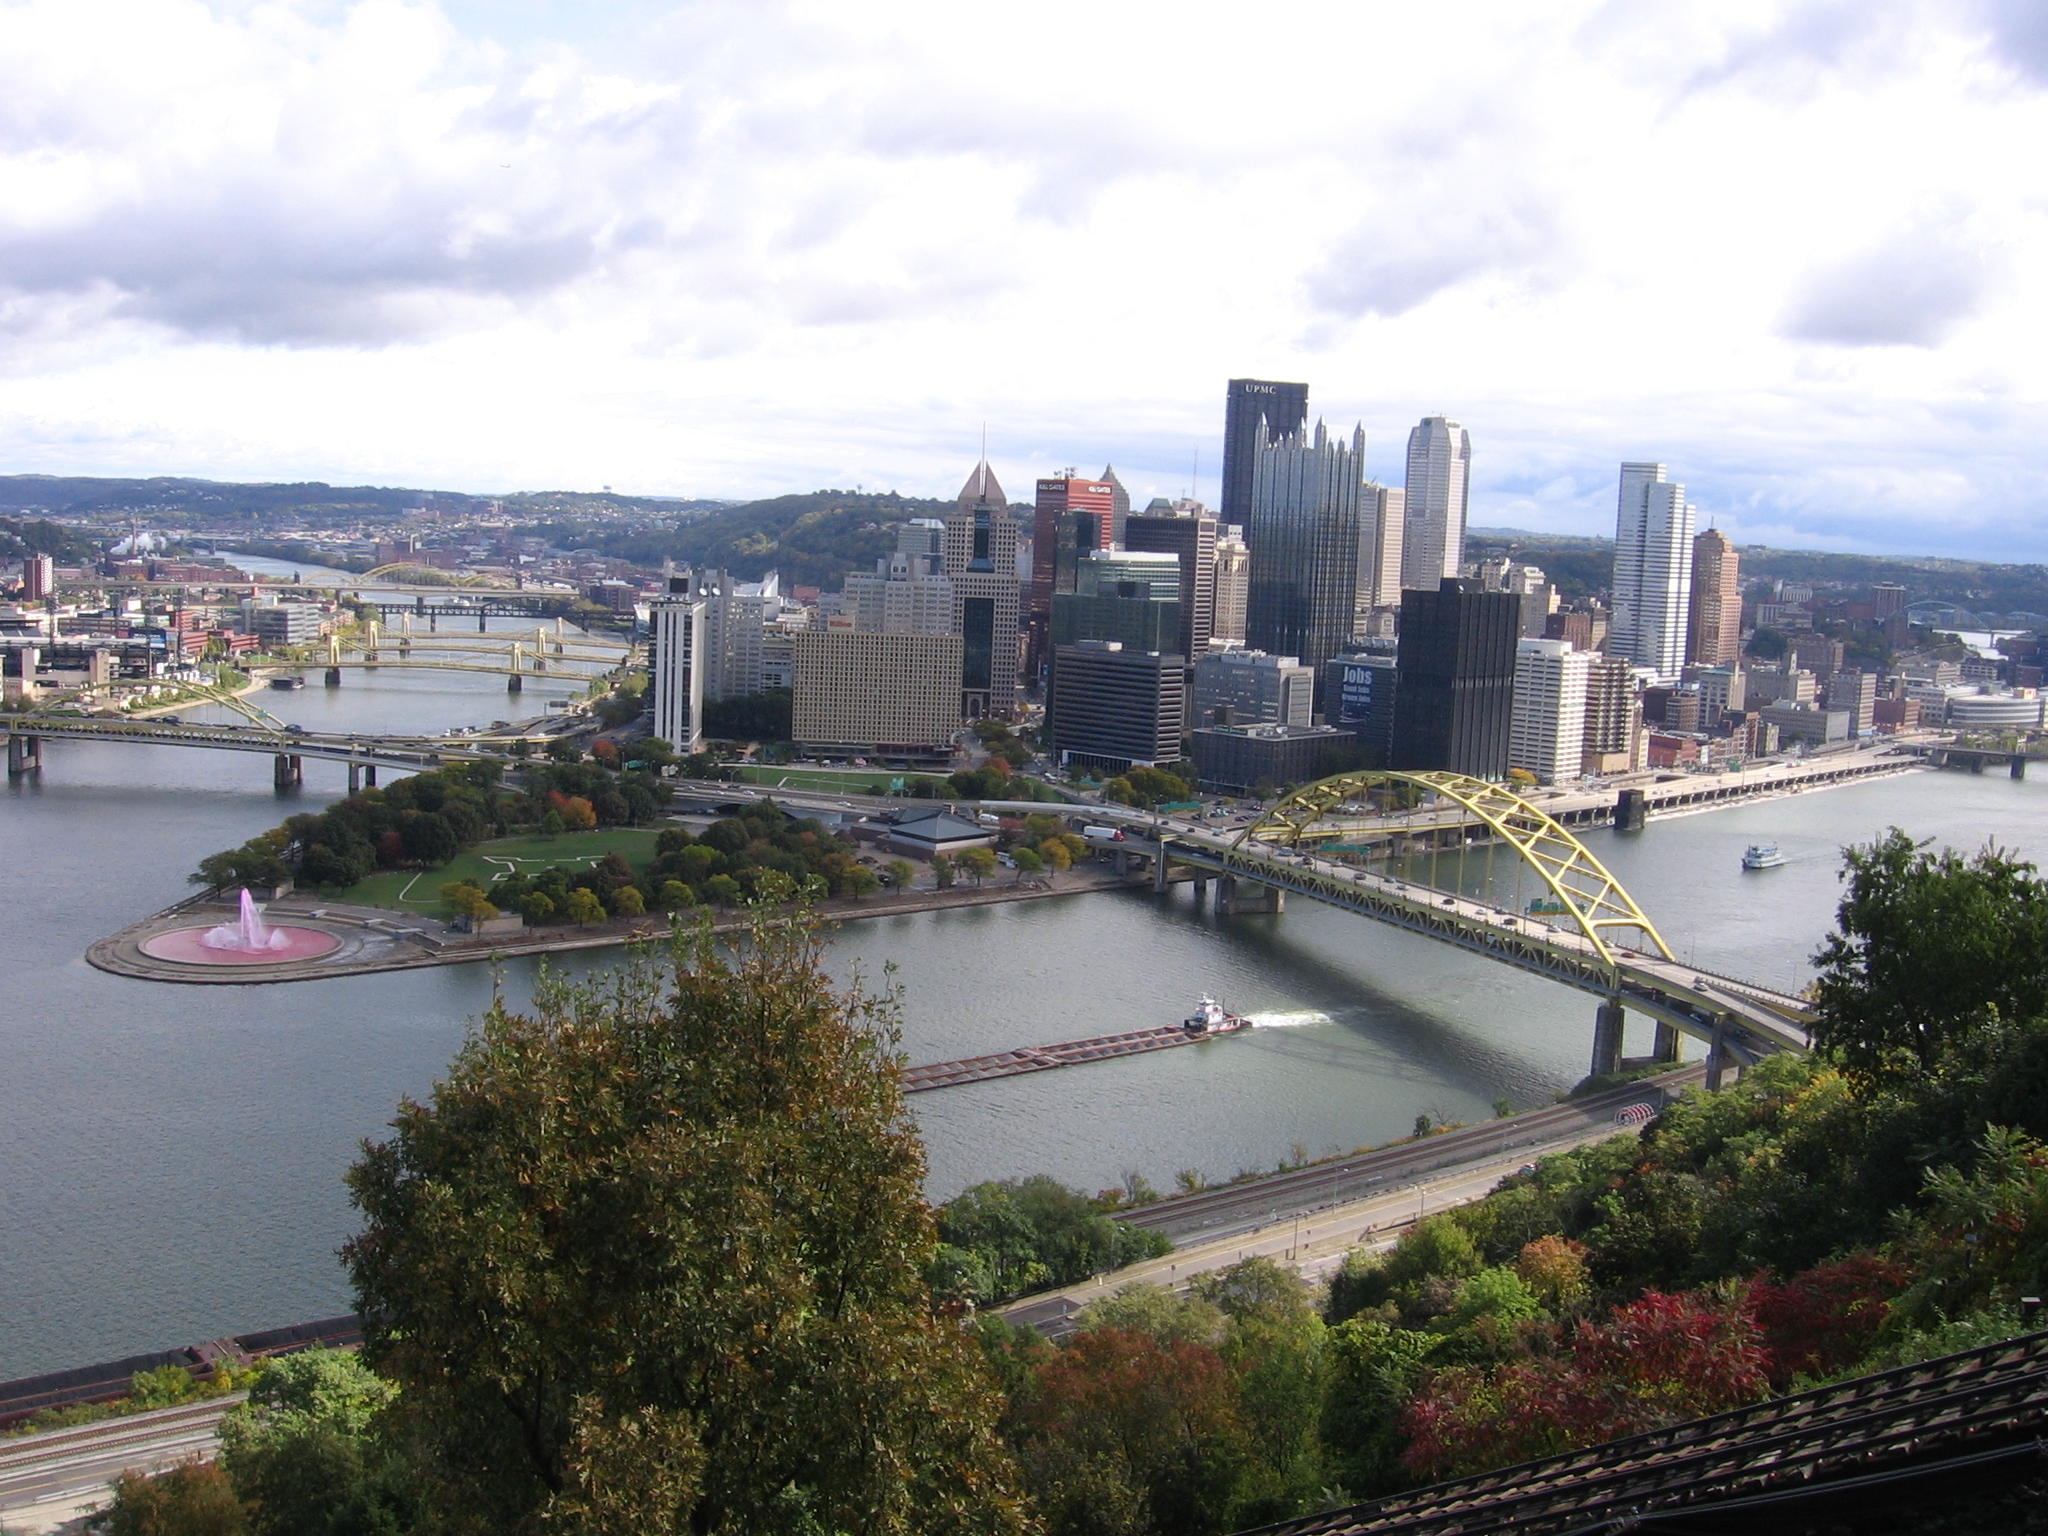 From the top of the Incline: Pittsburgh's Rivers